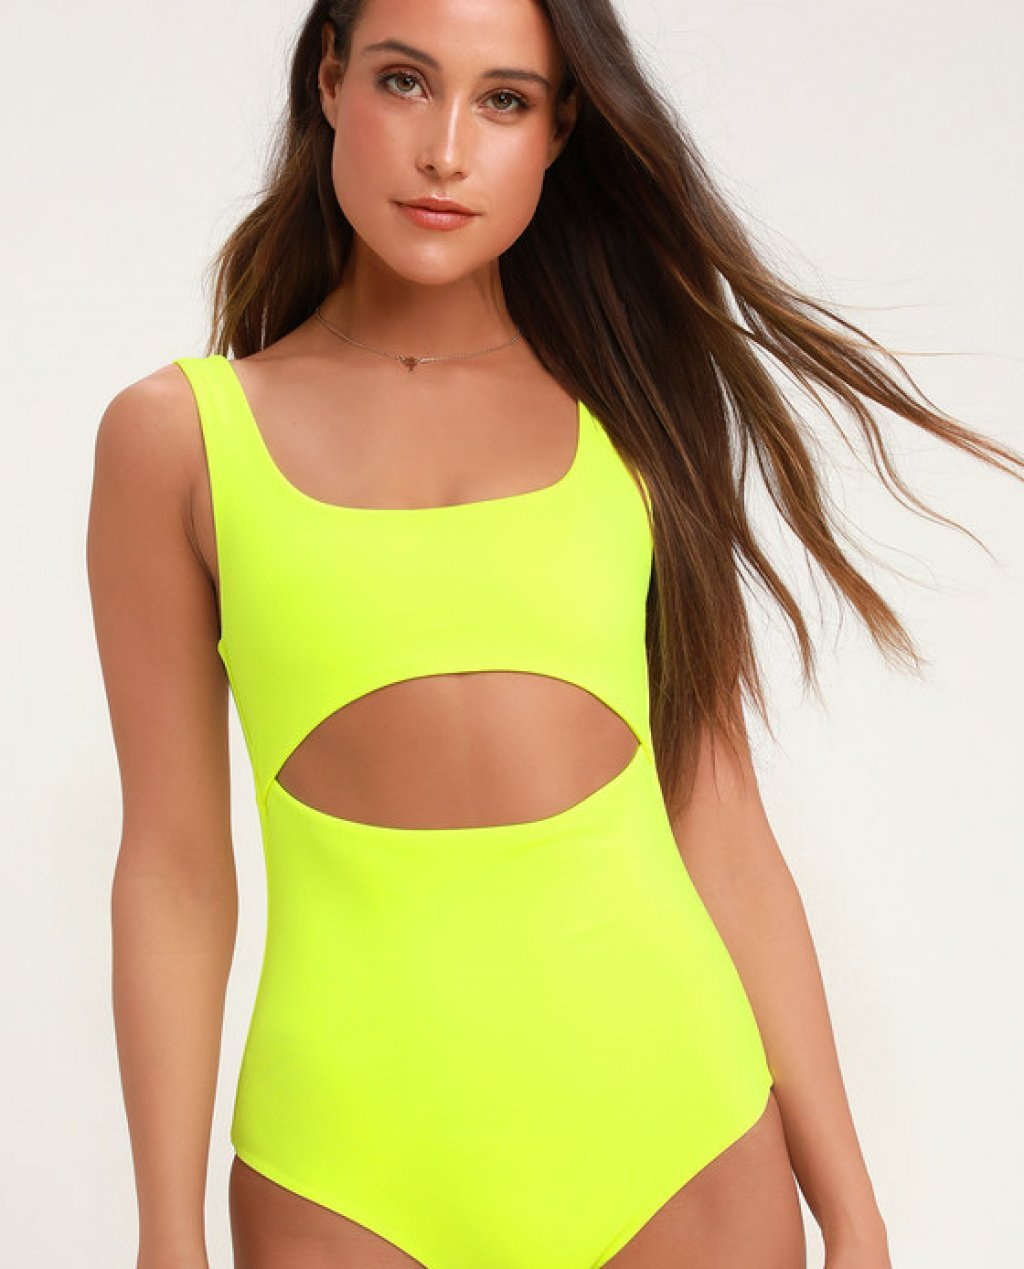 Lightning Bolt Neon Yellow One-Piece Swimsuit